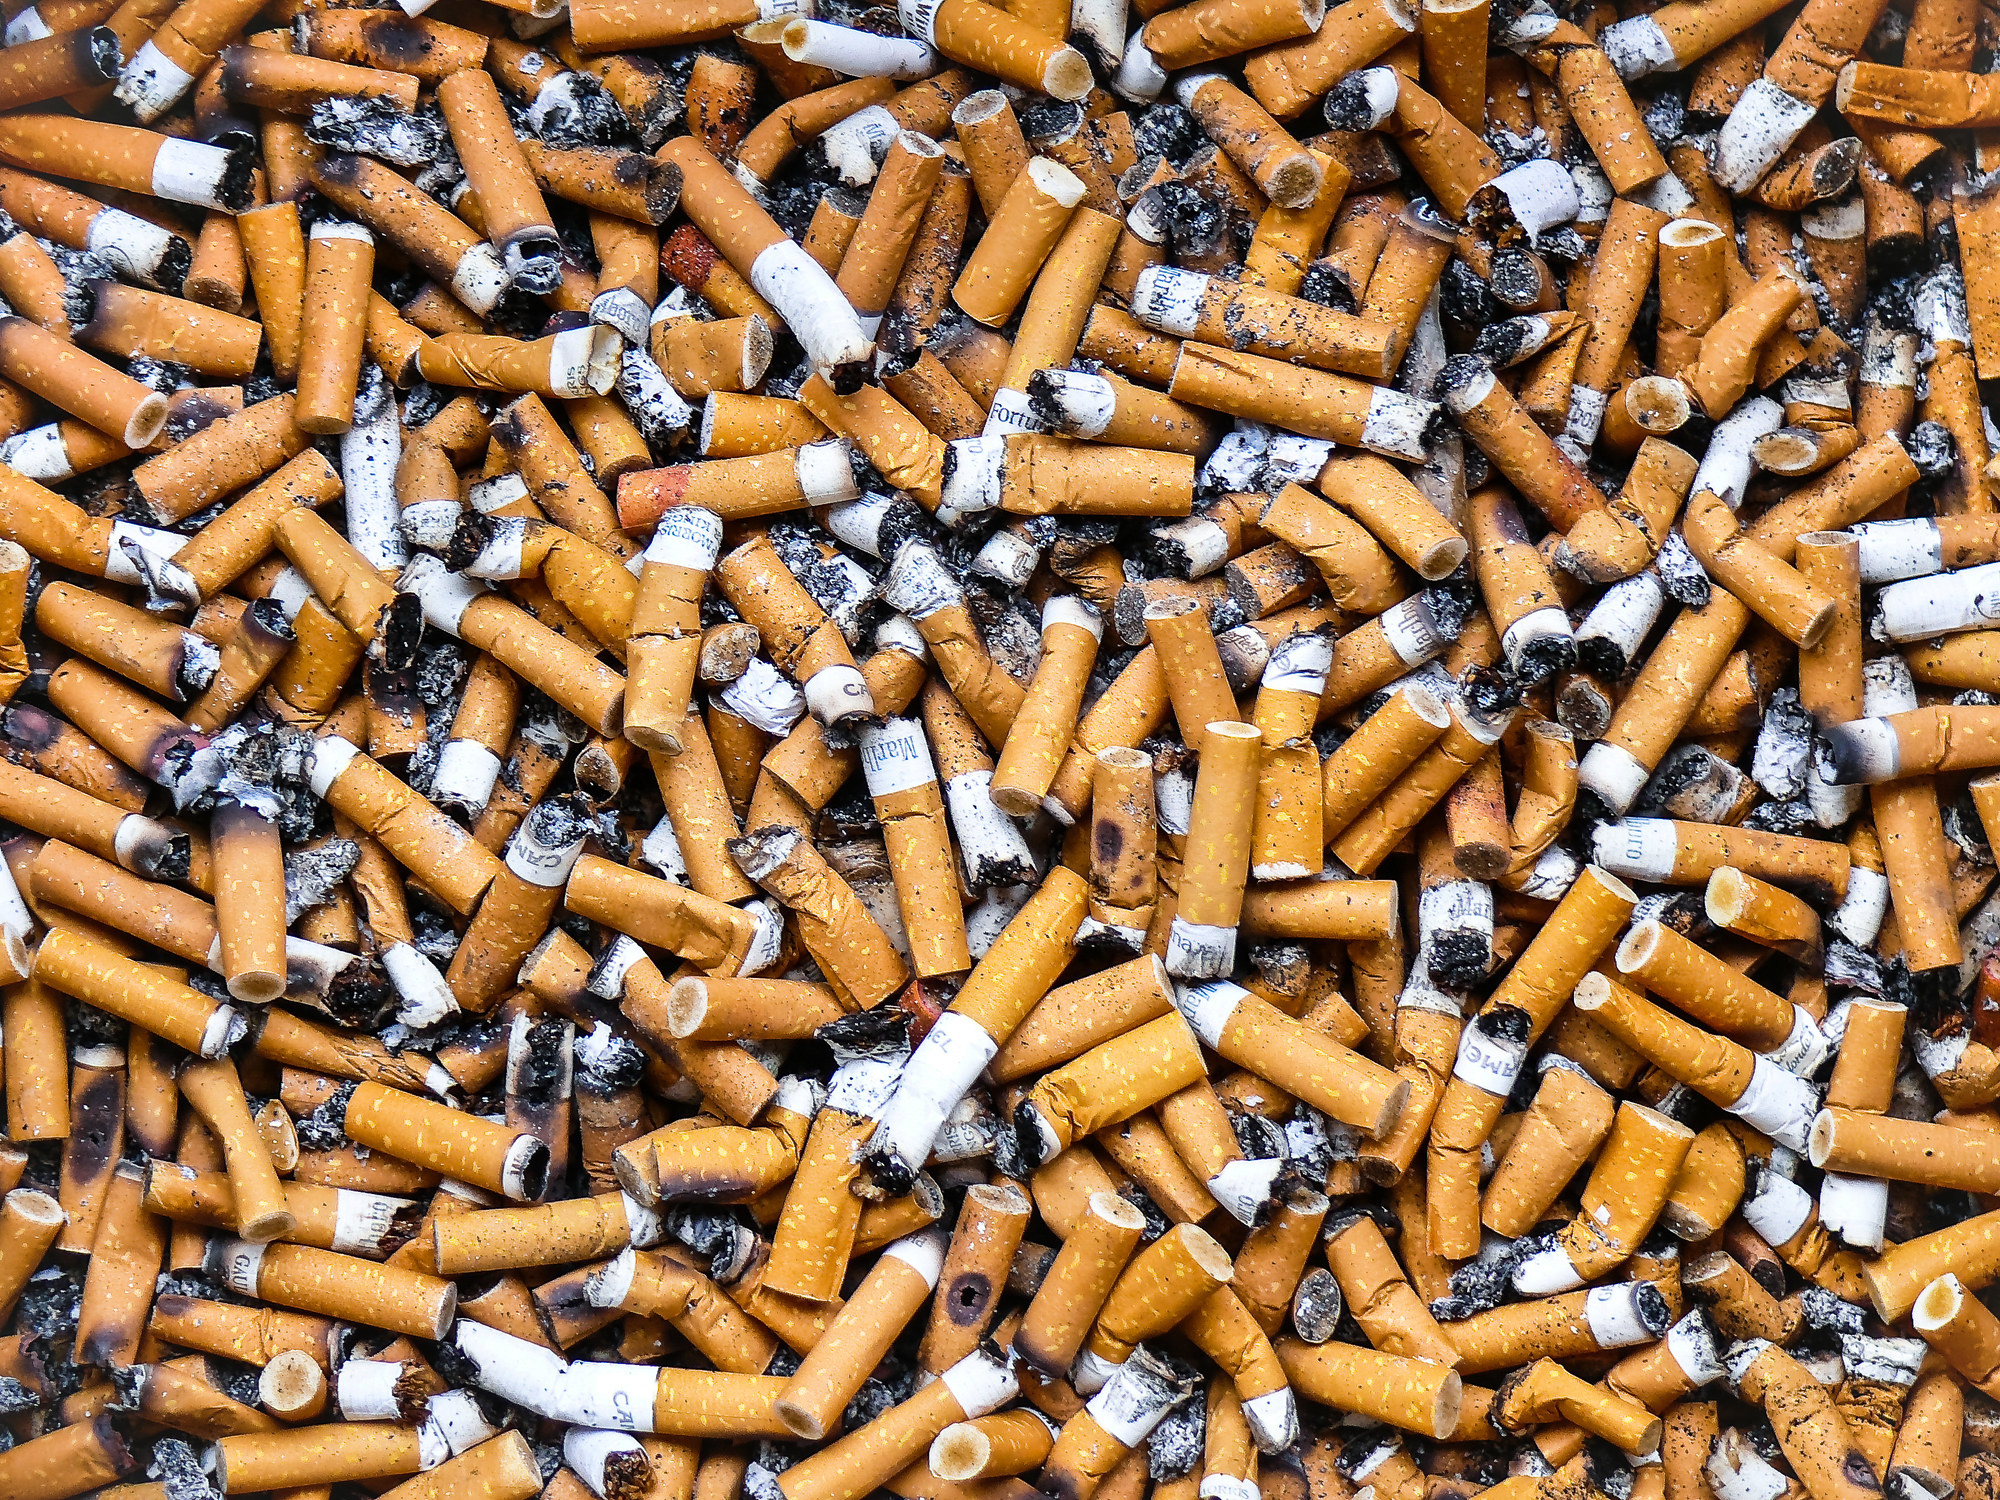 A layer of dozens of burnt-out cigarette butts filling the frame